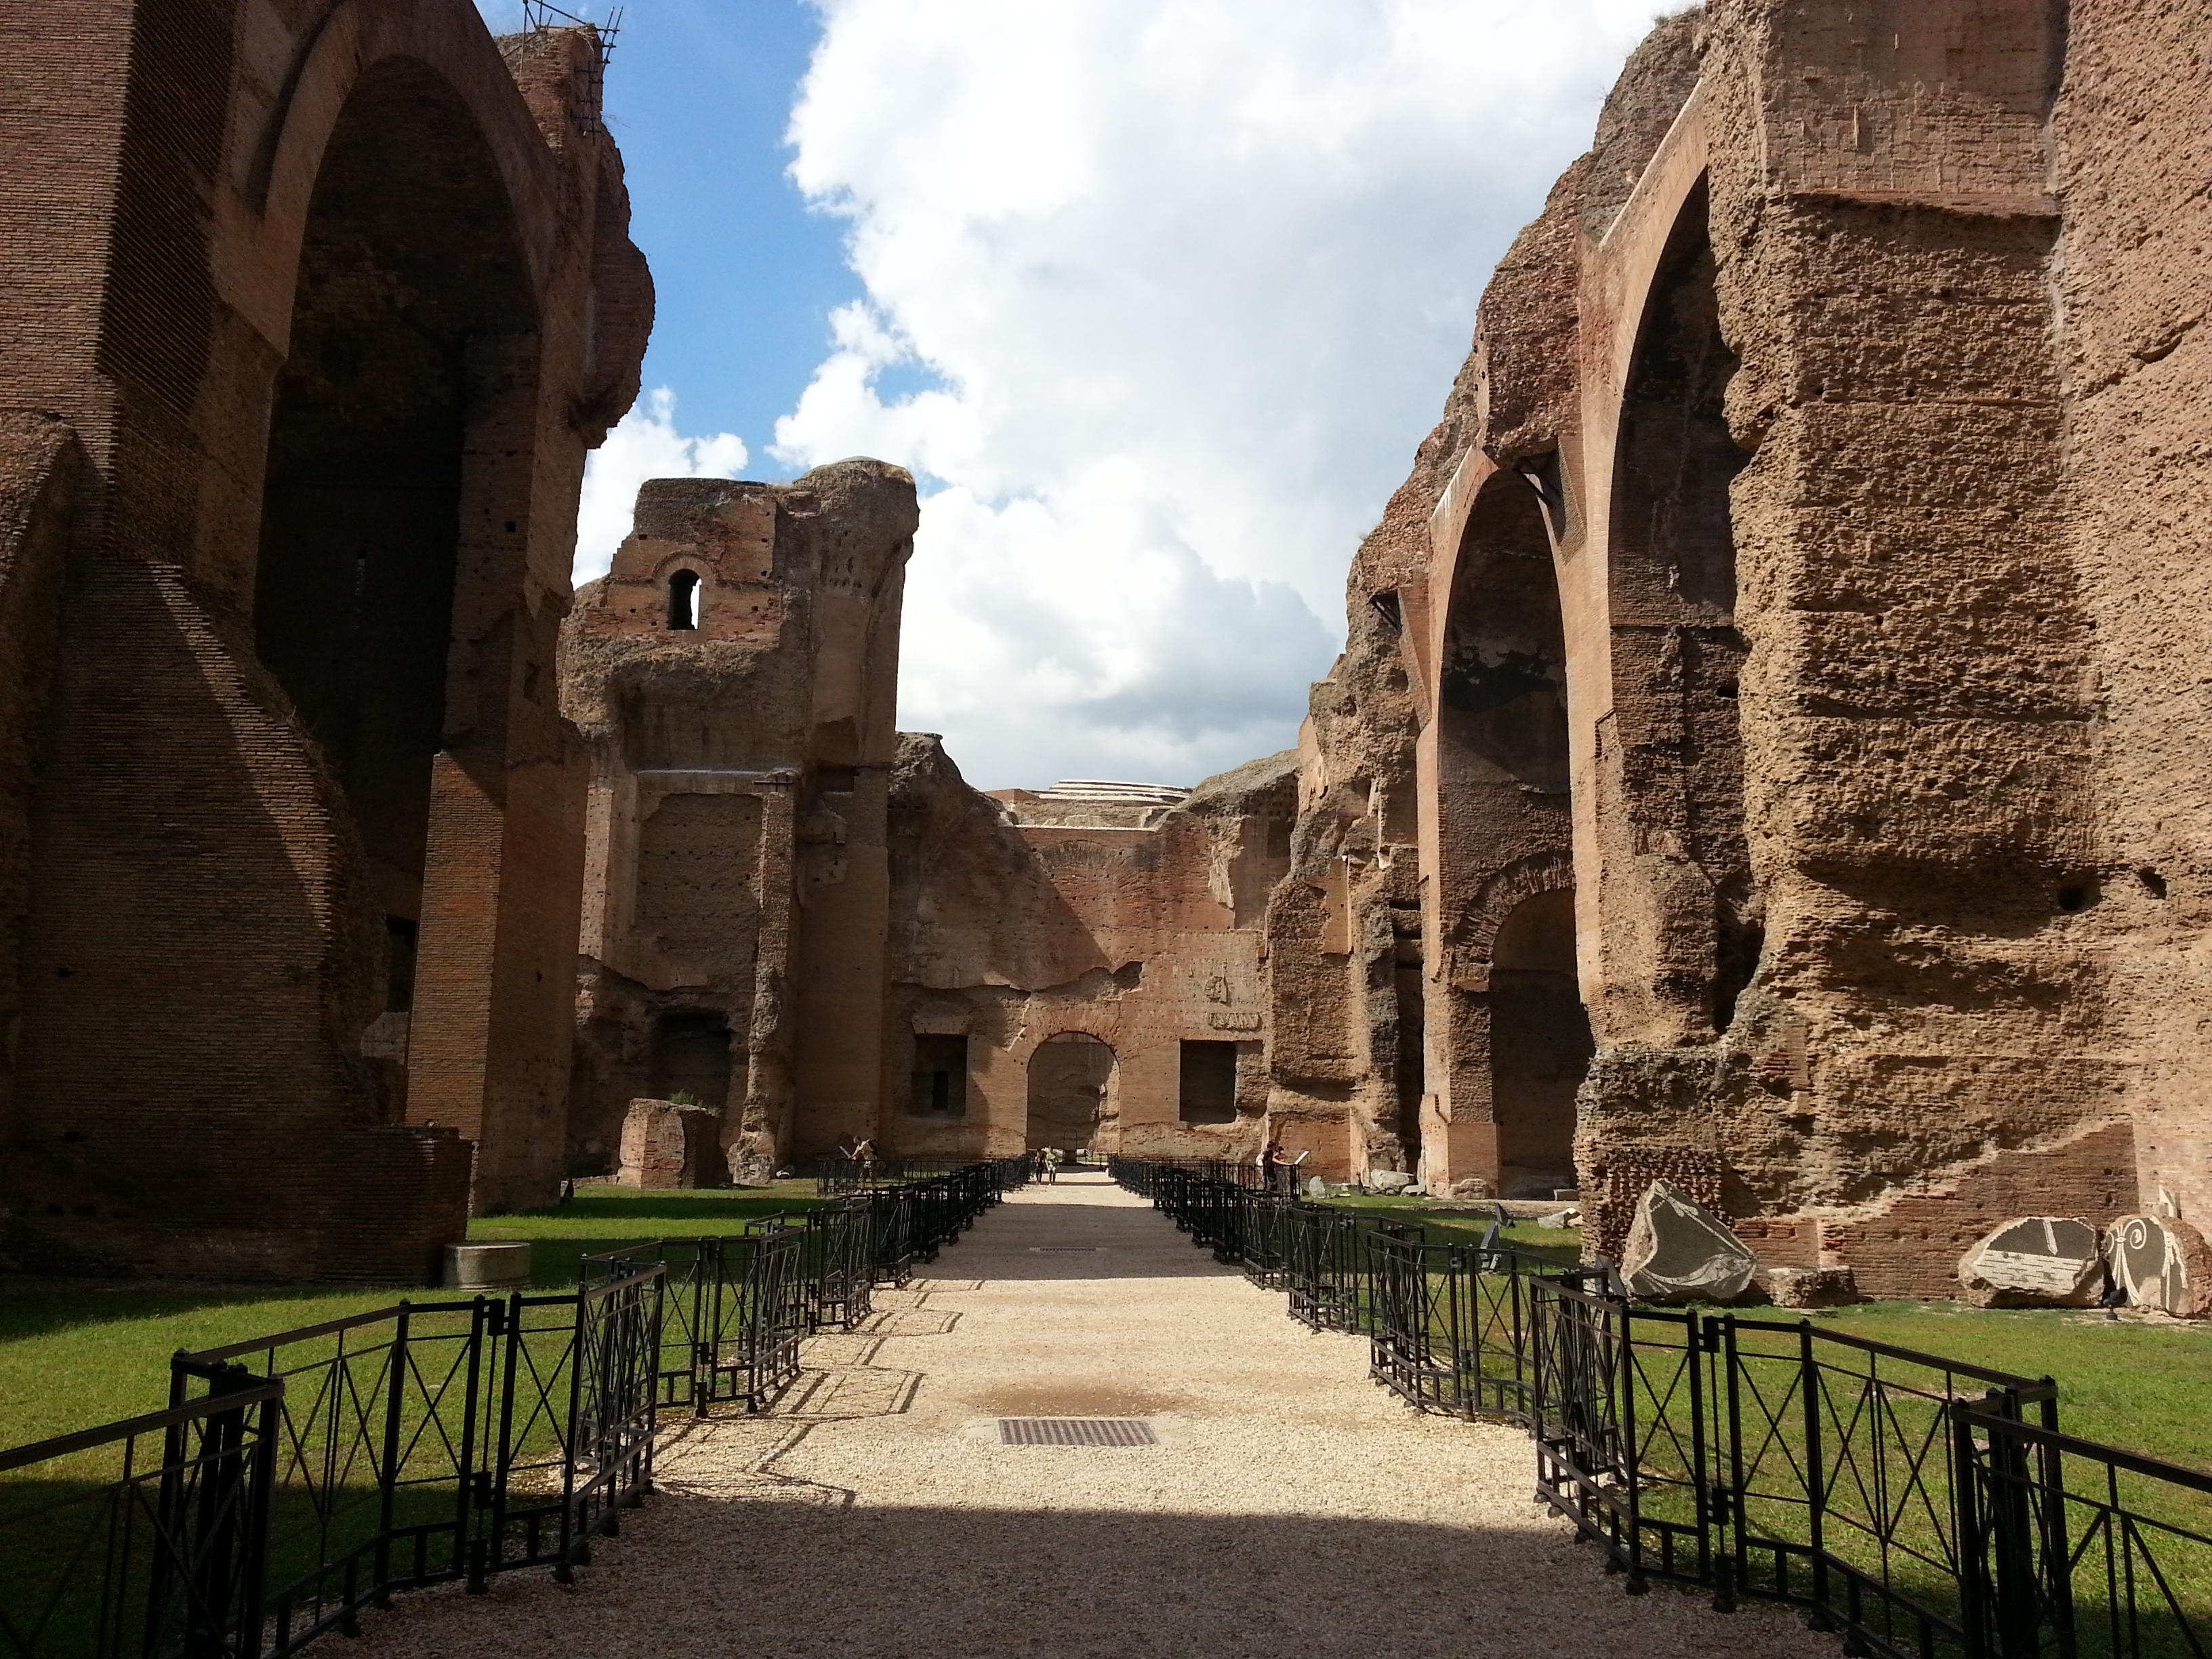 The Baths Of Caracalla The Largest Bath Complex In The